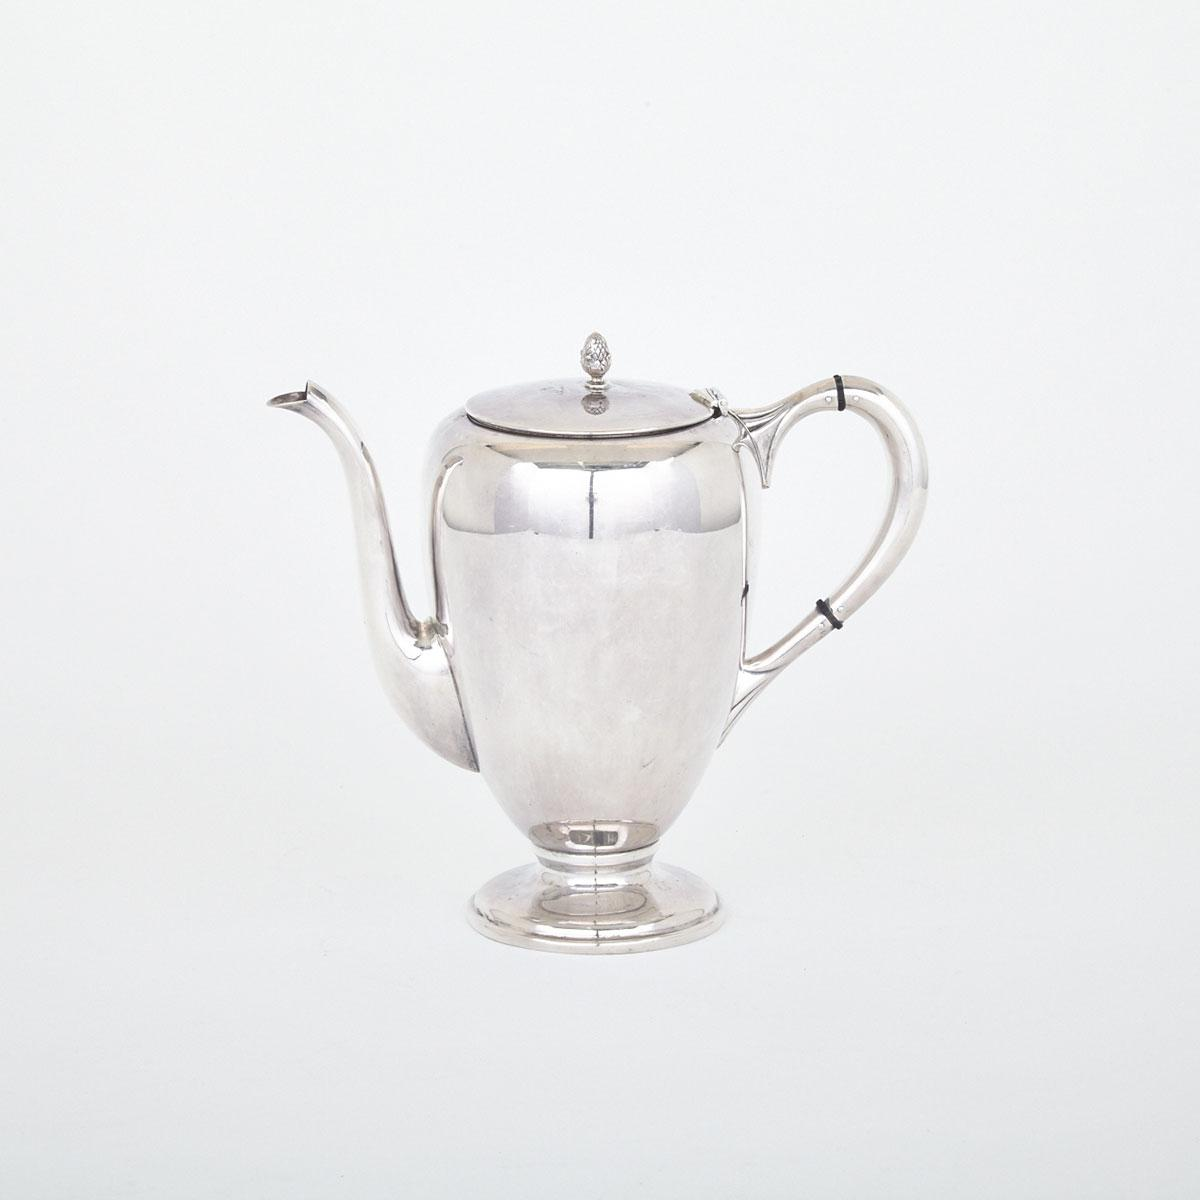 American Silver Coffee Pot, M. Fred Hirsh Co., Jersey City, N.J., 20th century